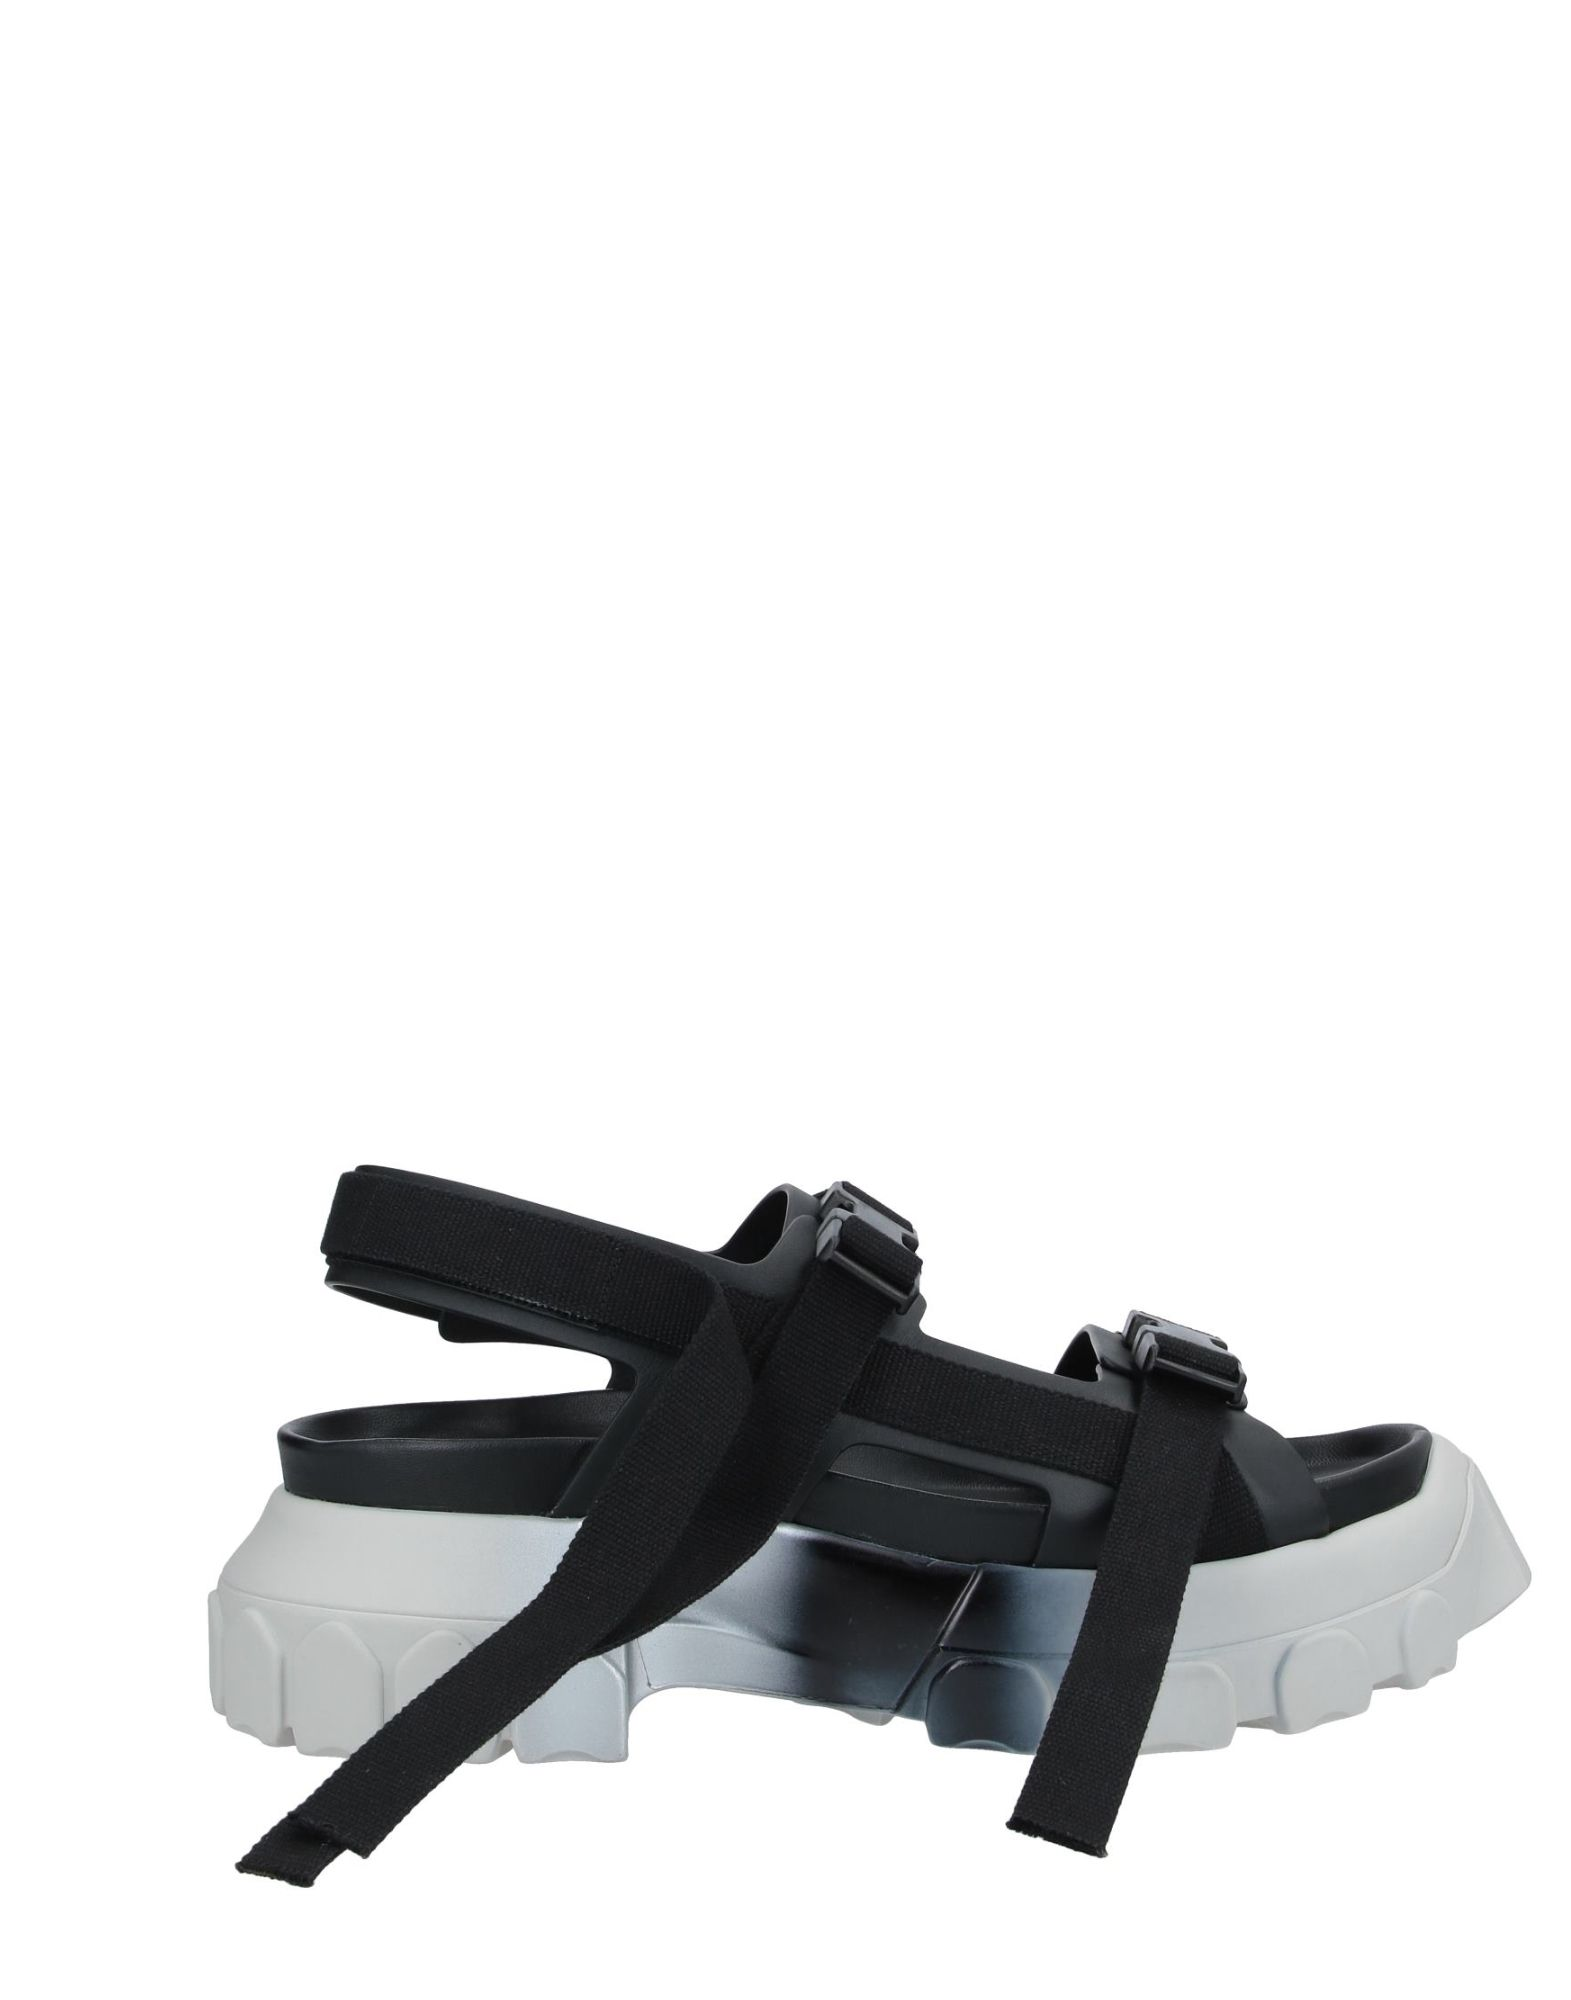 RICK OWENS Sandals. canvas, no appliqués, solid color, buckle fastening, round toeline, square heel, rubber heel, leather lining, rubber sole, contains non-textile parts of animal origin. Soft Leather, Textile fibers